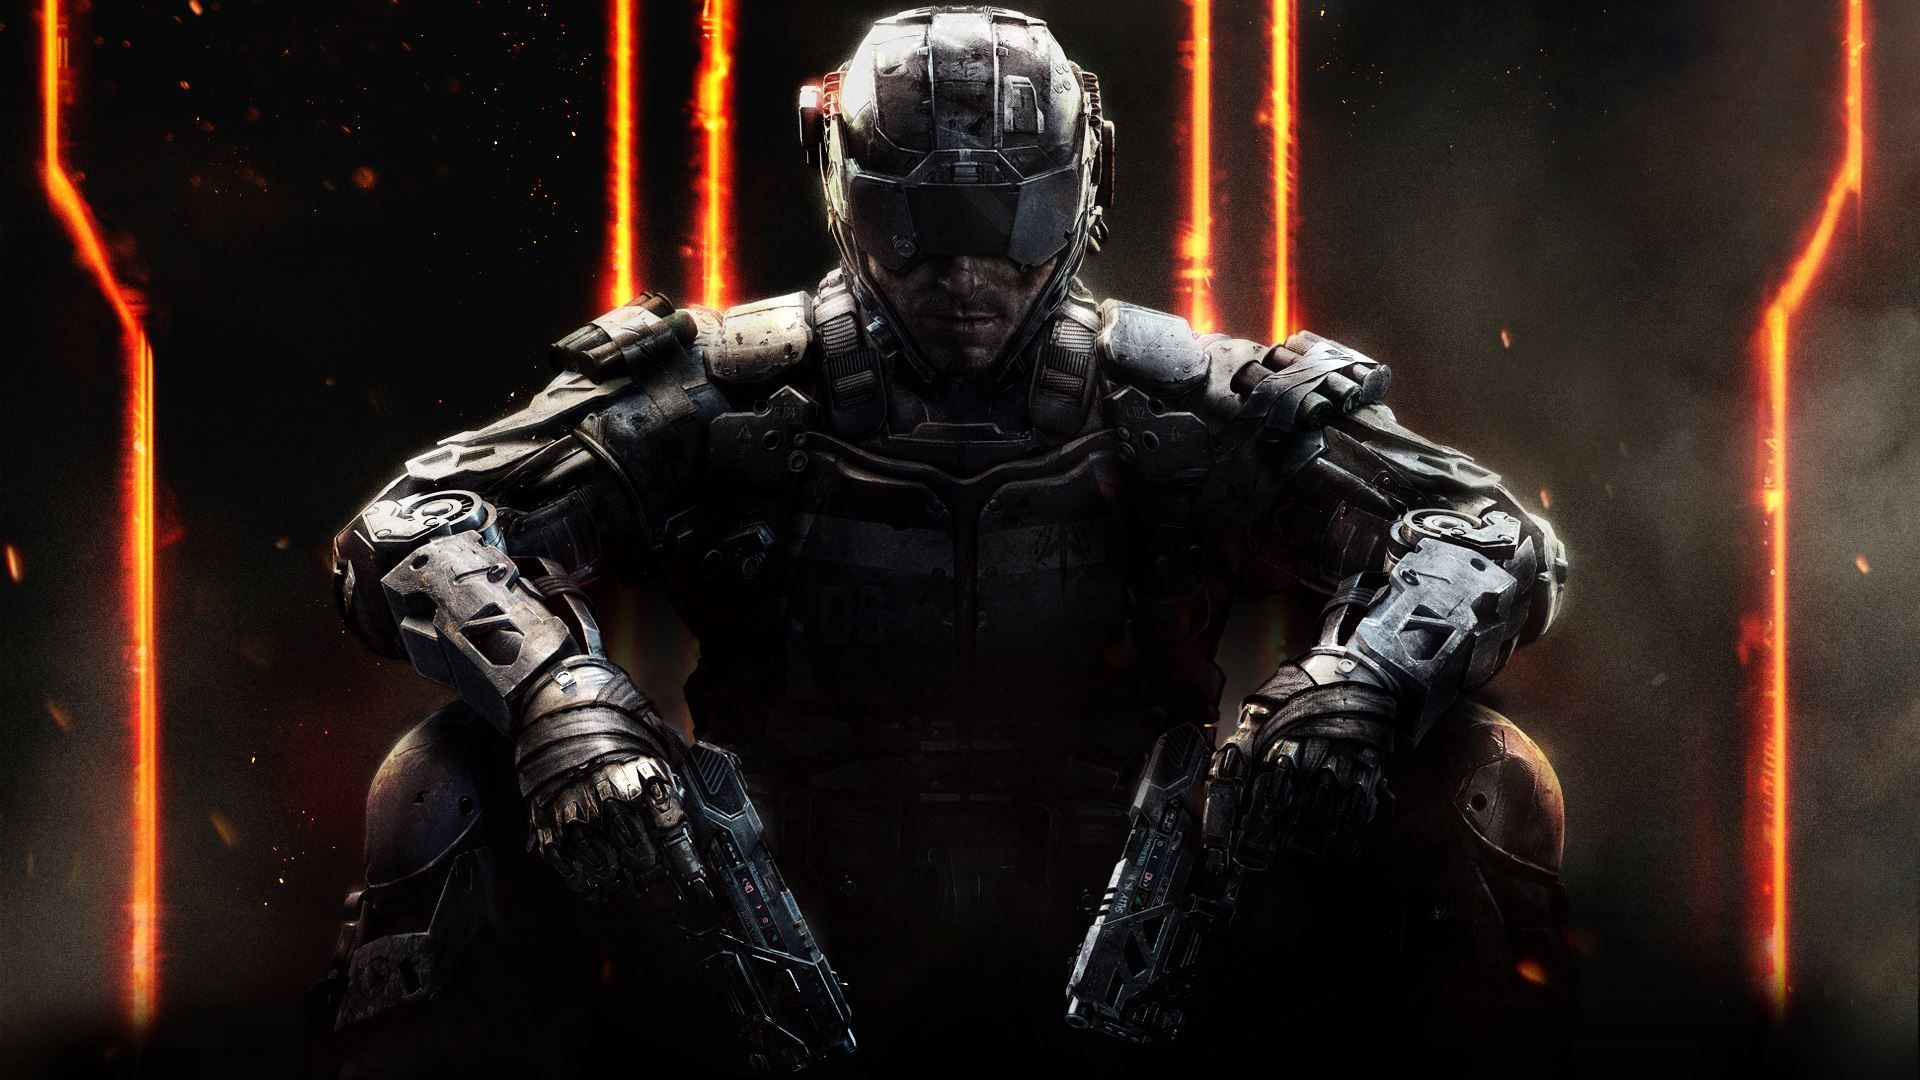 7061 - ¿Reconoces los especialistas de Black Ops 3?